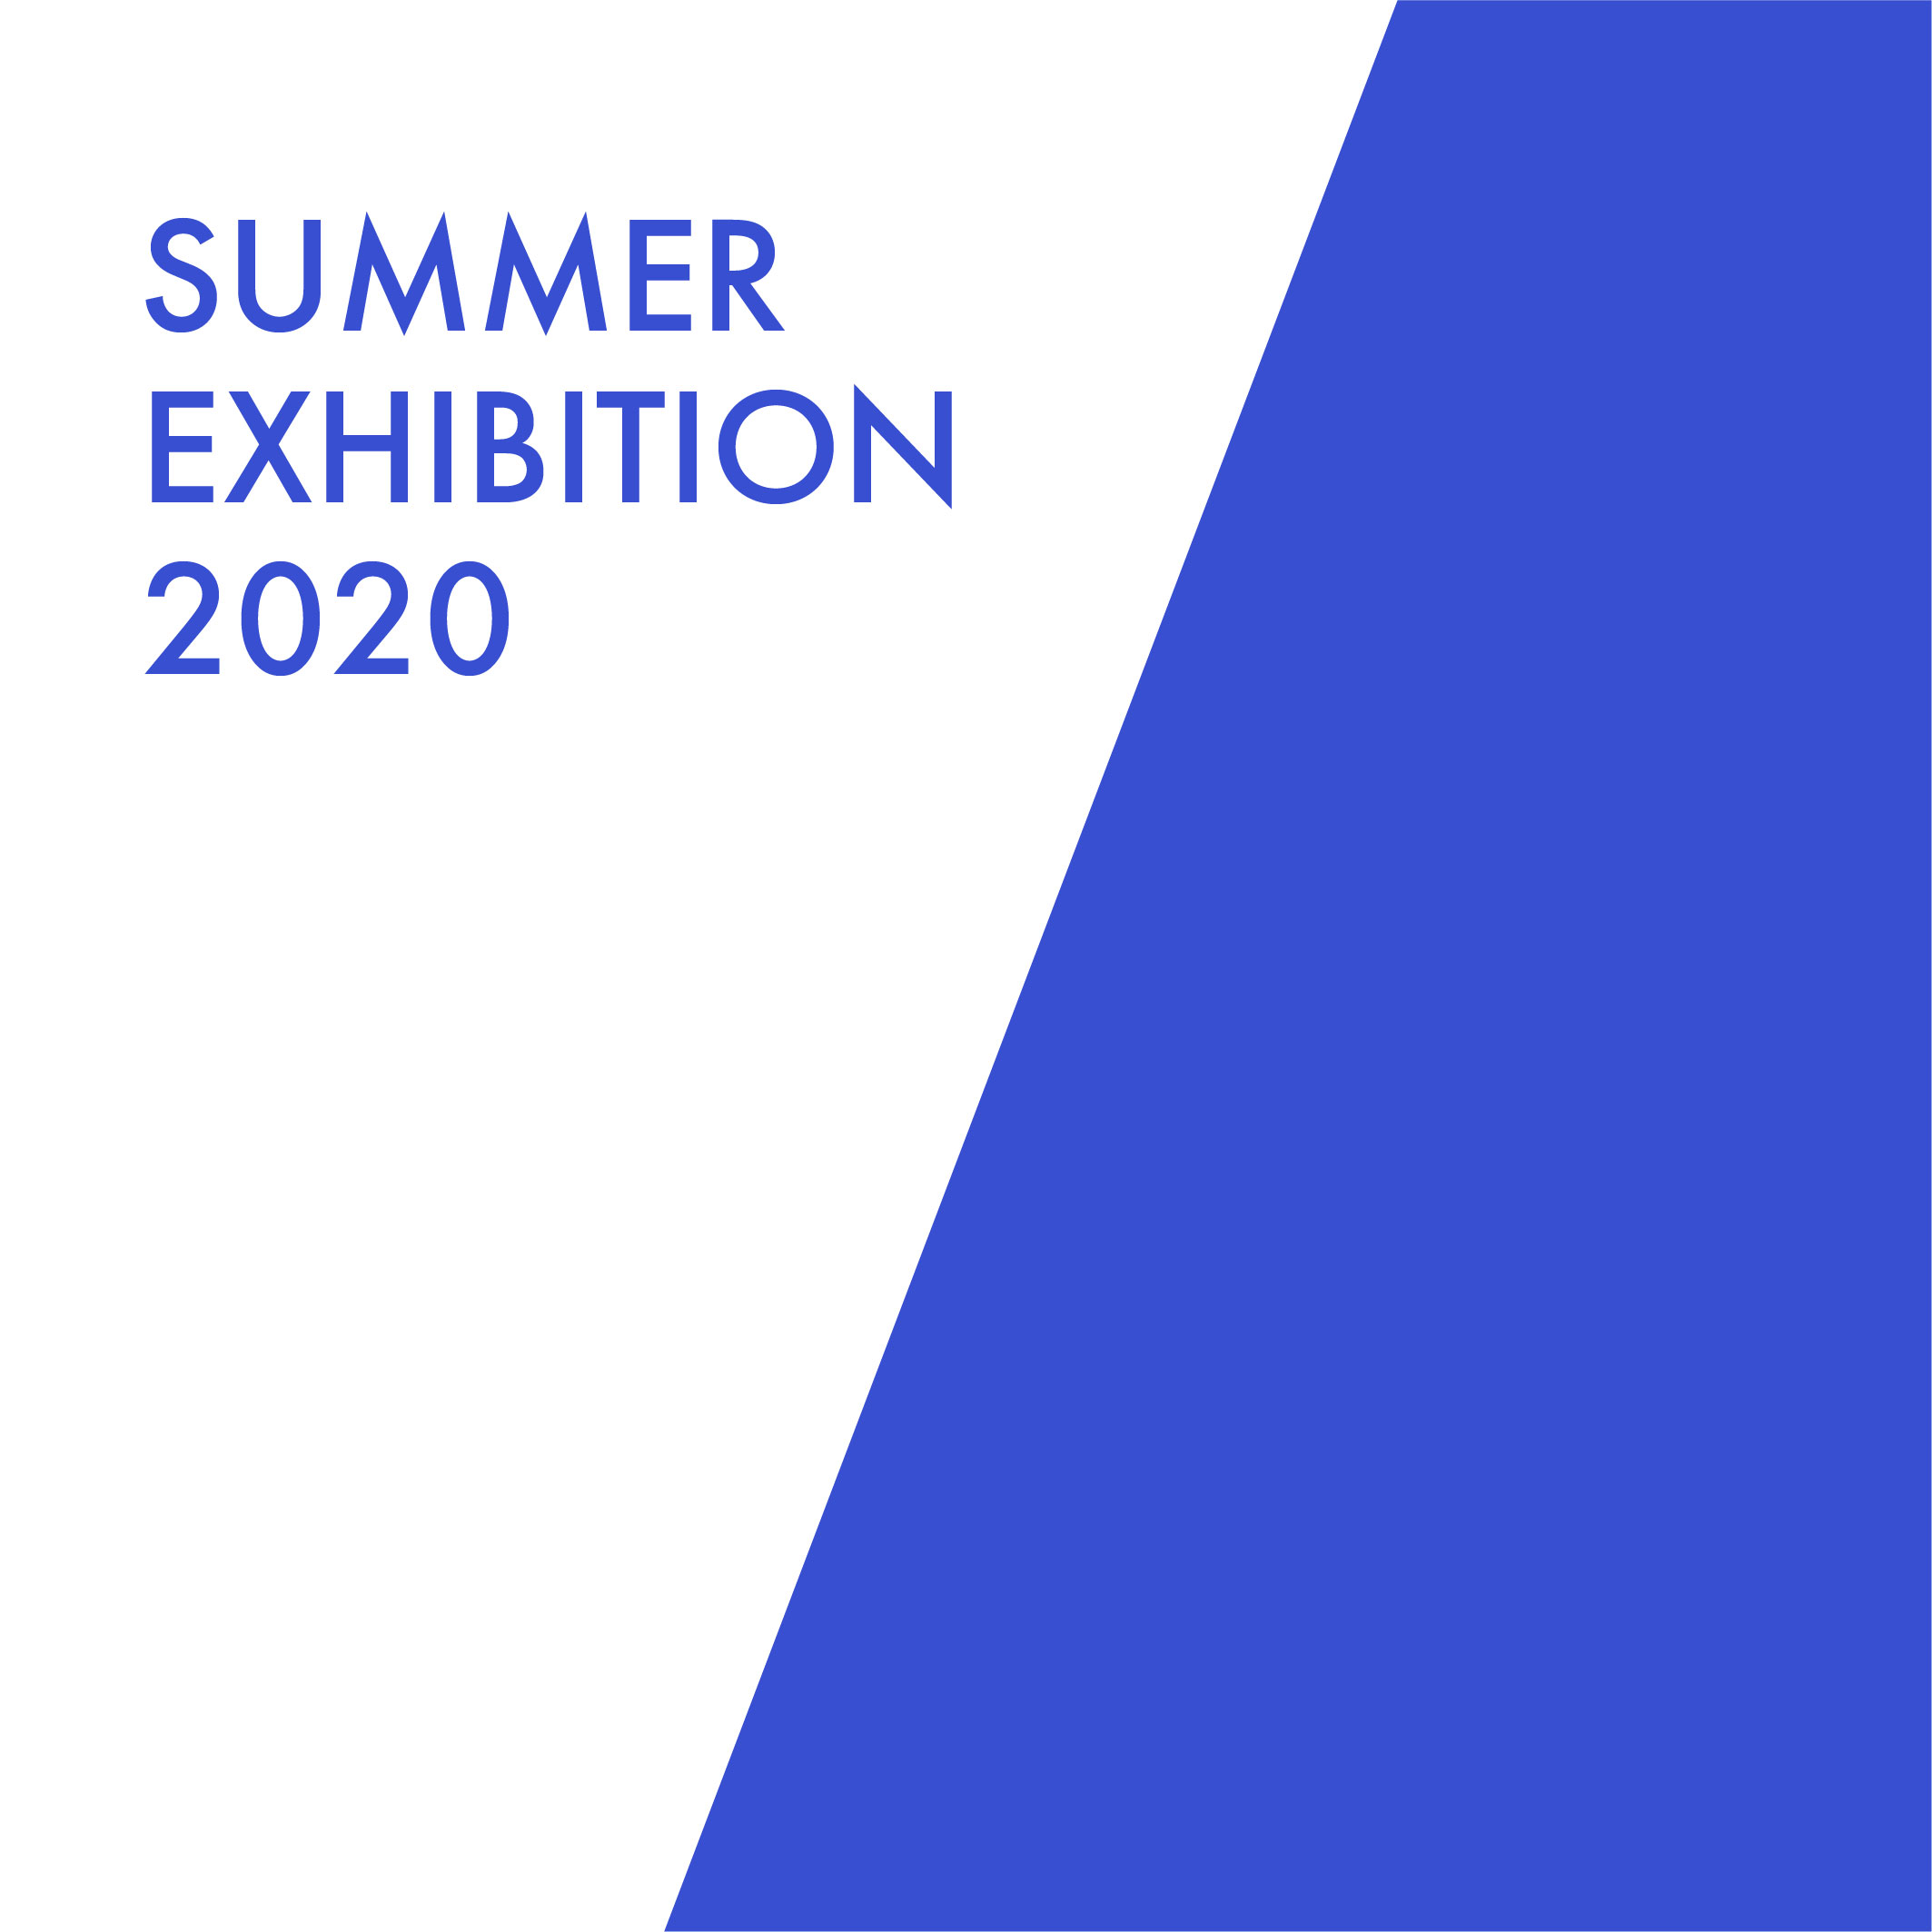 A simple graphic with the words Summer Exhibition 2020